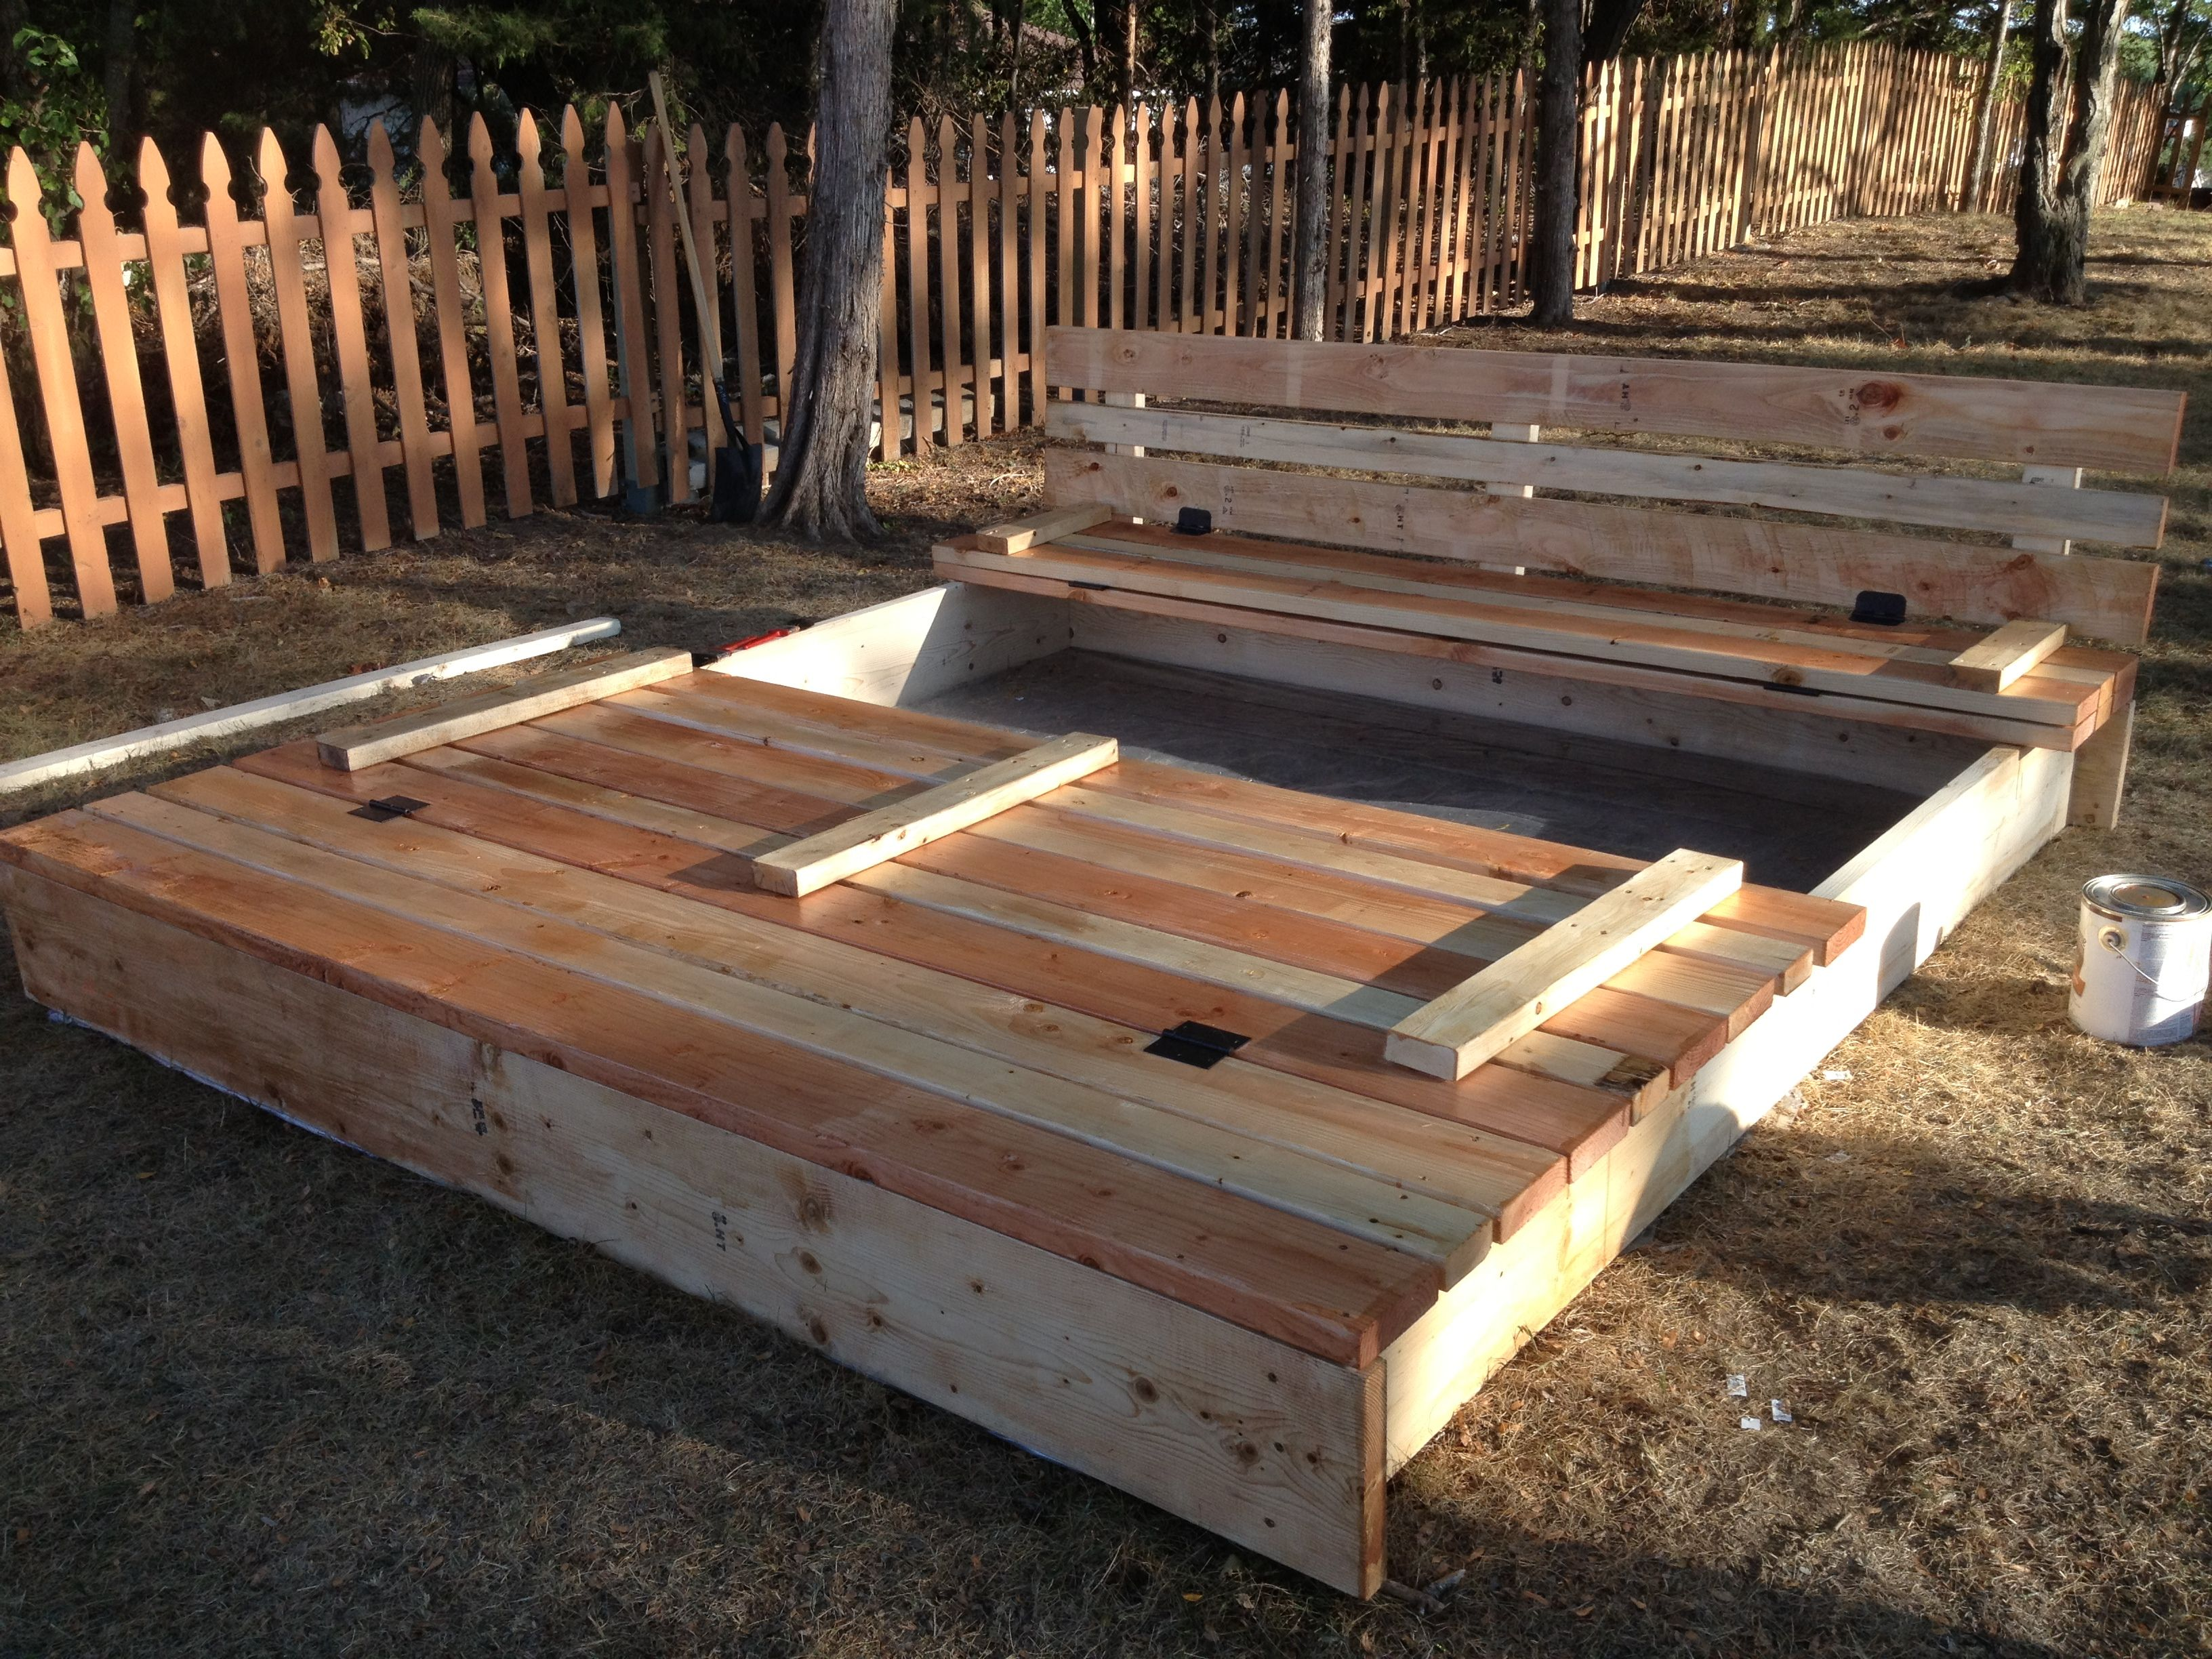 Pin By Shelly Schroeder Horstman On Misc Sandbox With Lid Patio